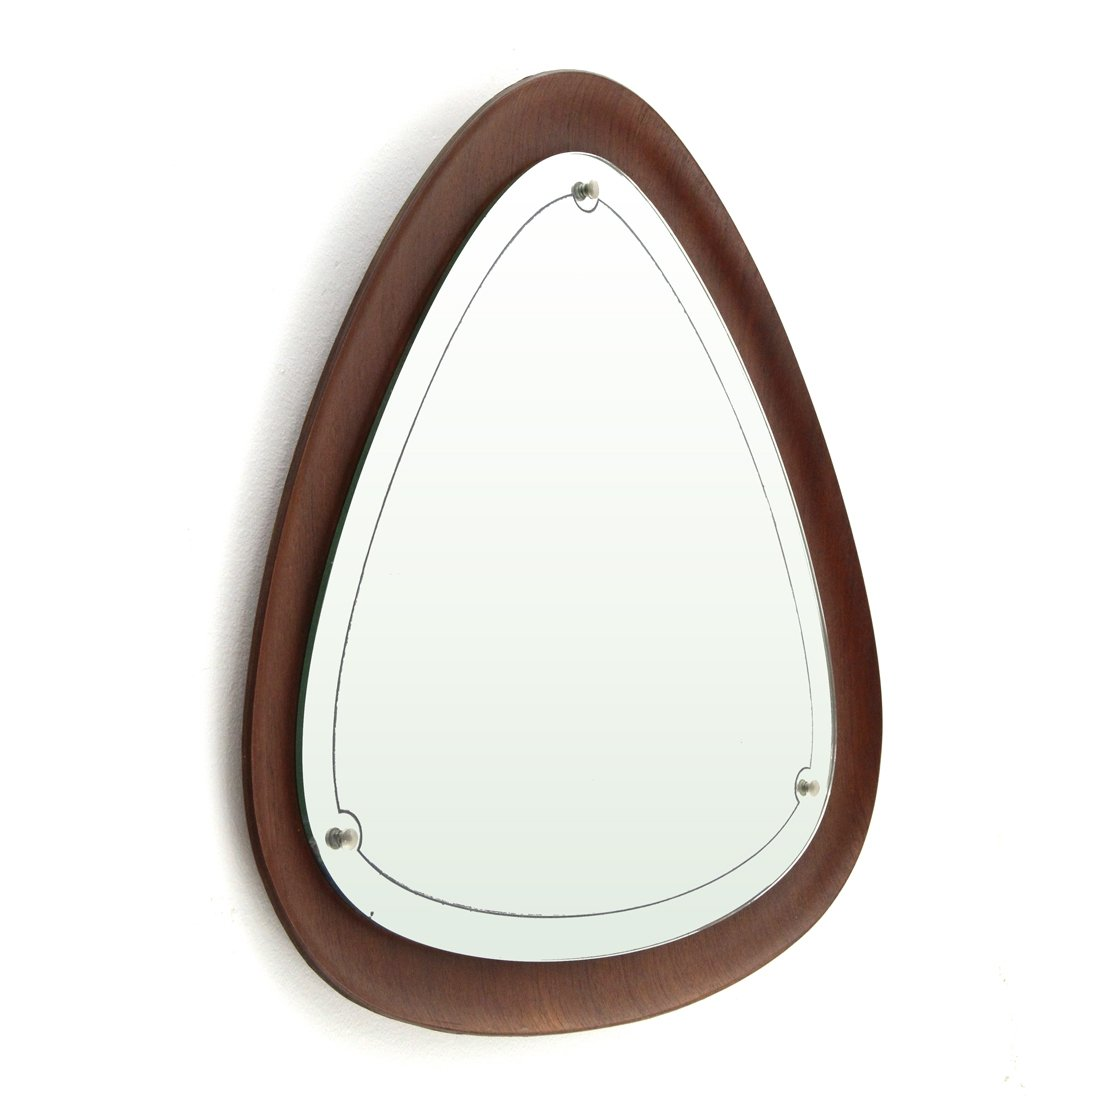 Midcentury Modern Mirror With Triangular Frame In Plywood 1960 S